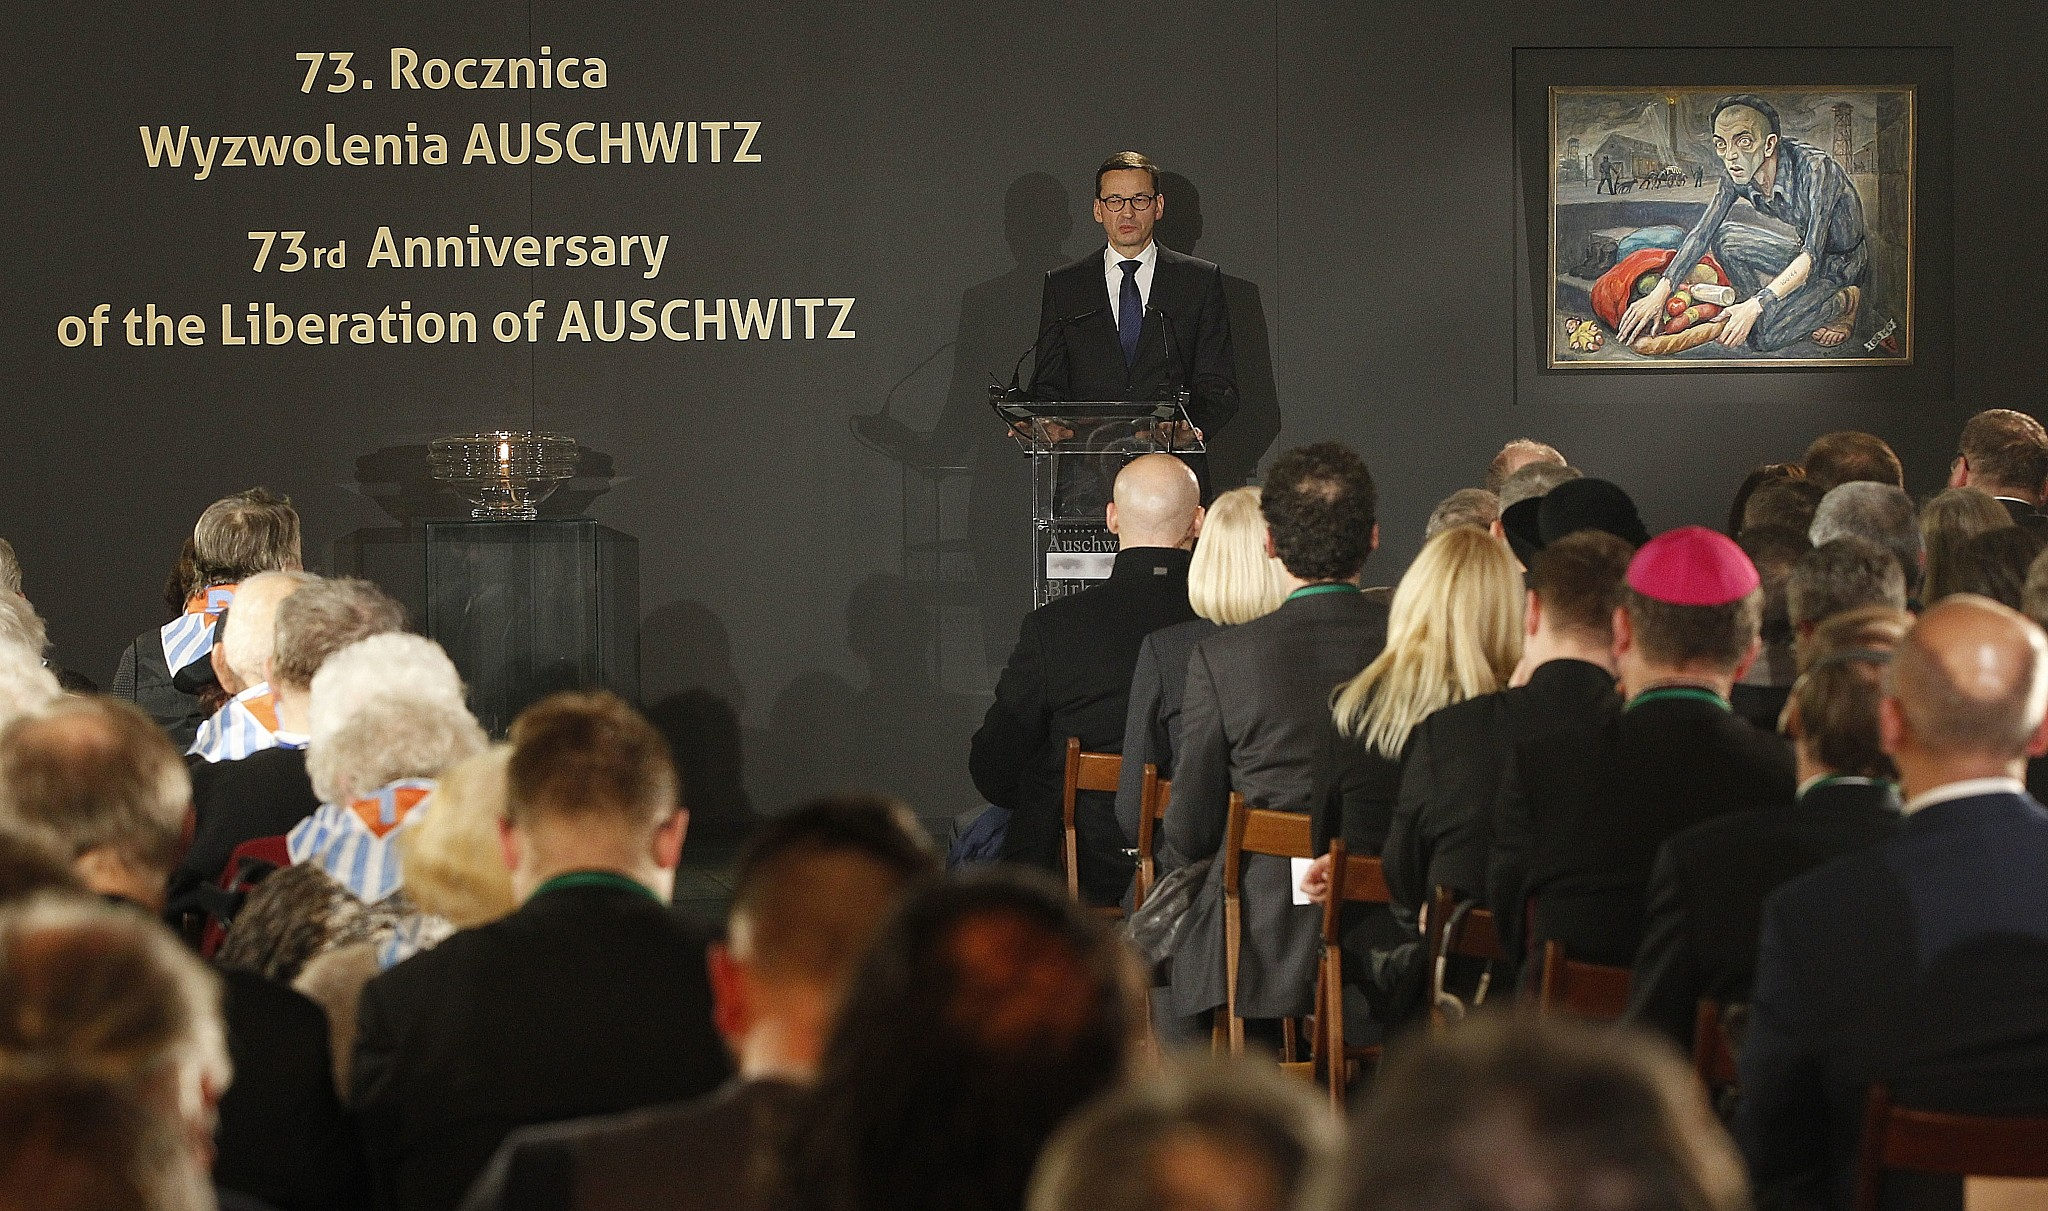 Polish Progressive Judaism Group Voices Opposition to Poland's Holocaust Bill